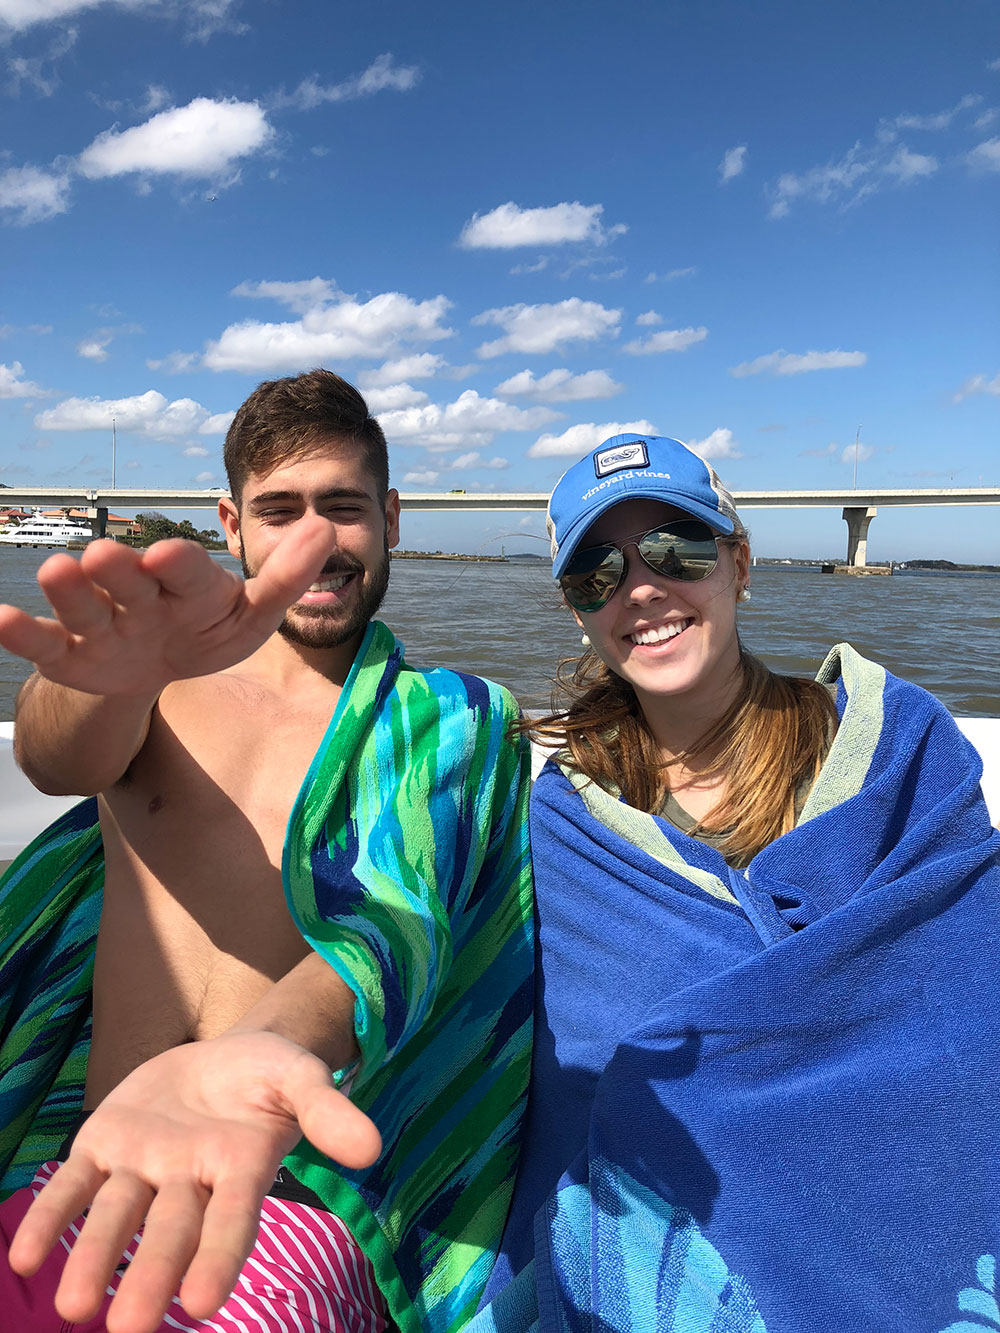 Teenage boy making alligator hand gesture sitting next to girl wrapped in a towel